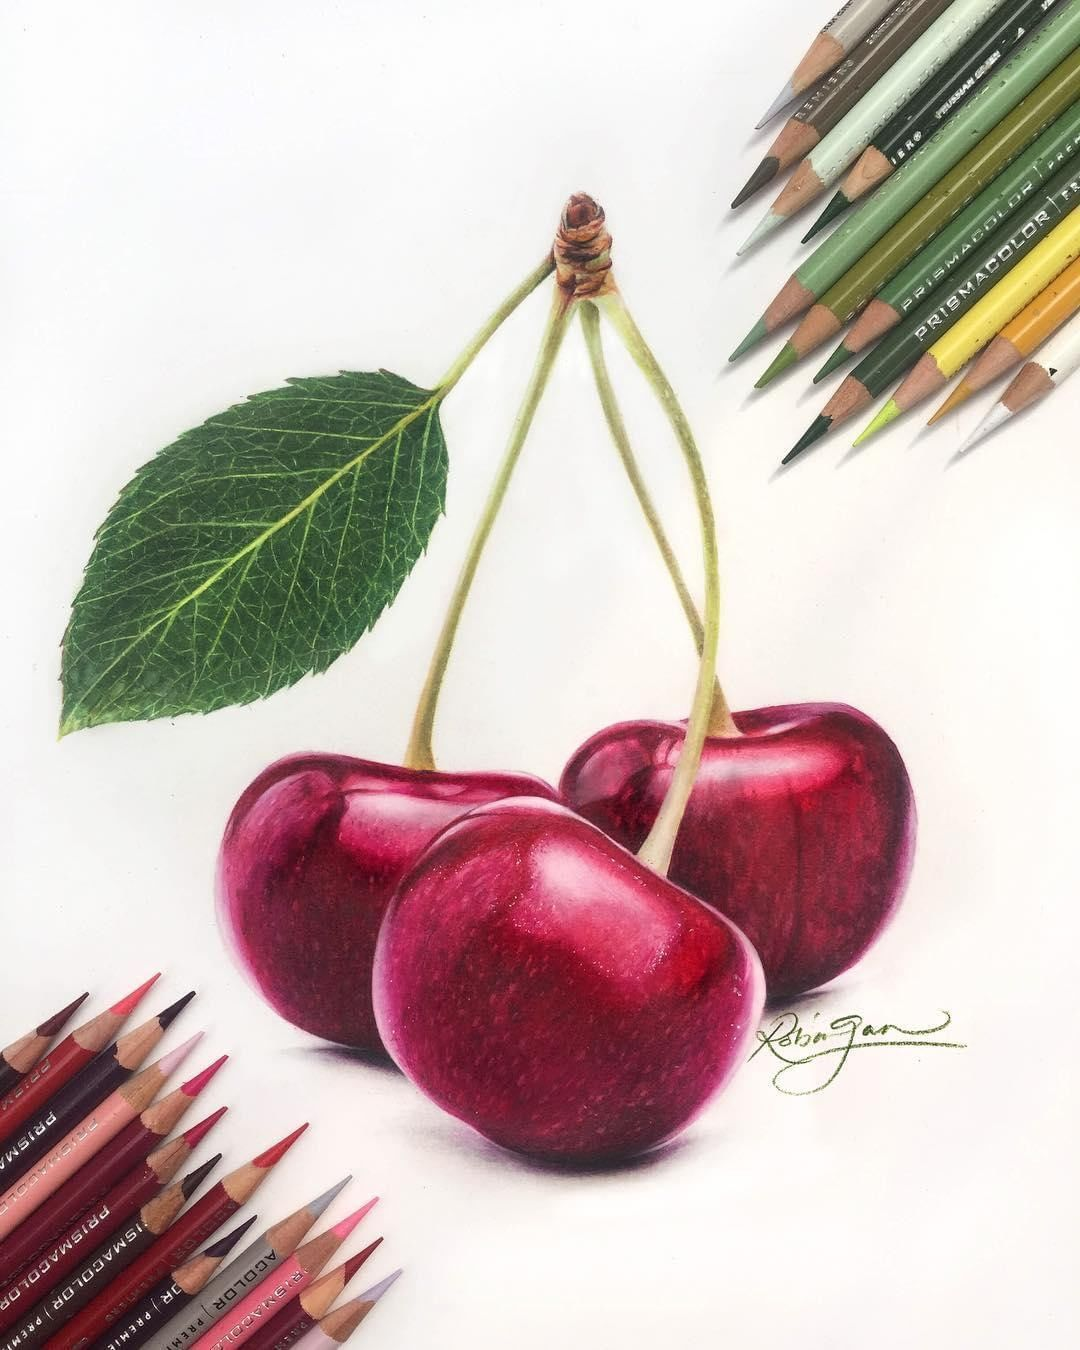 Prismacolor On Instagram These Cherries Look So Sweet You Can Almost Taste Them Robingan Color Pencil Drawing Color Pencil Art Colored Pencil Artwork